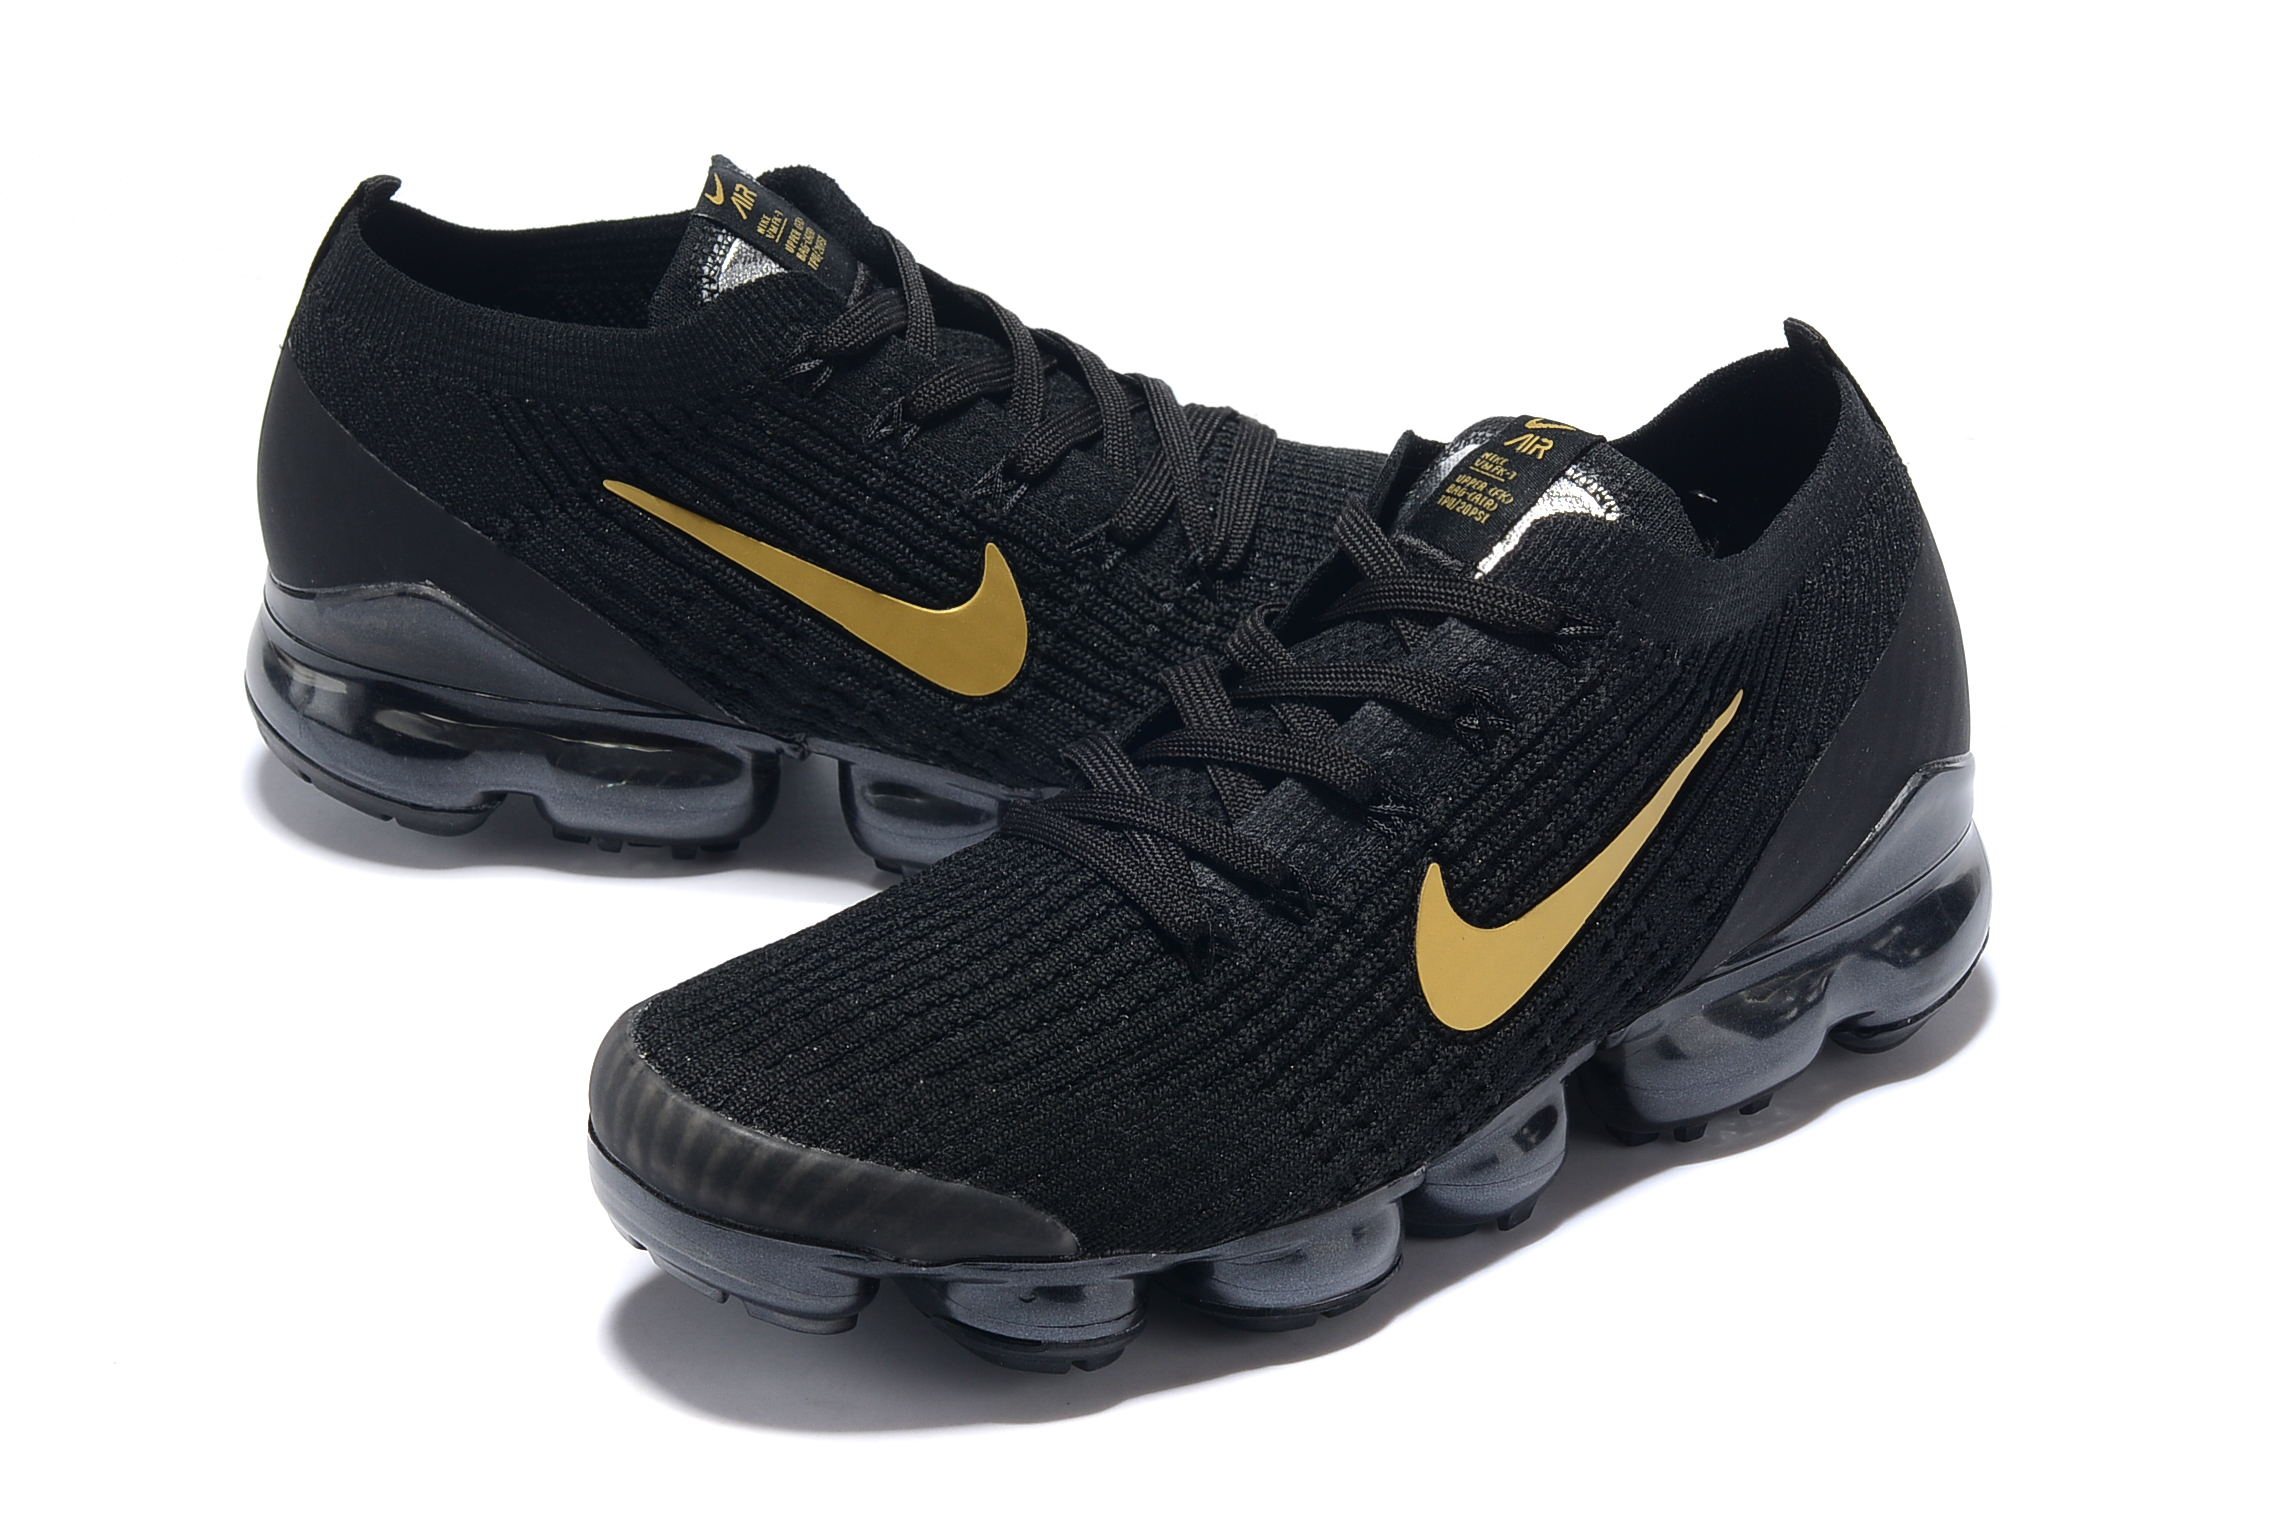 Nike Air VaporMax 2019 Flyknit Black Gold Shoes